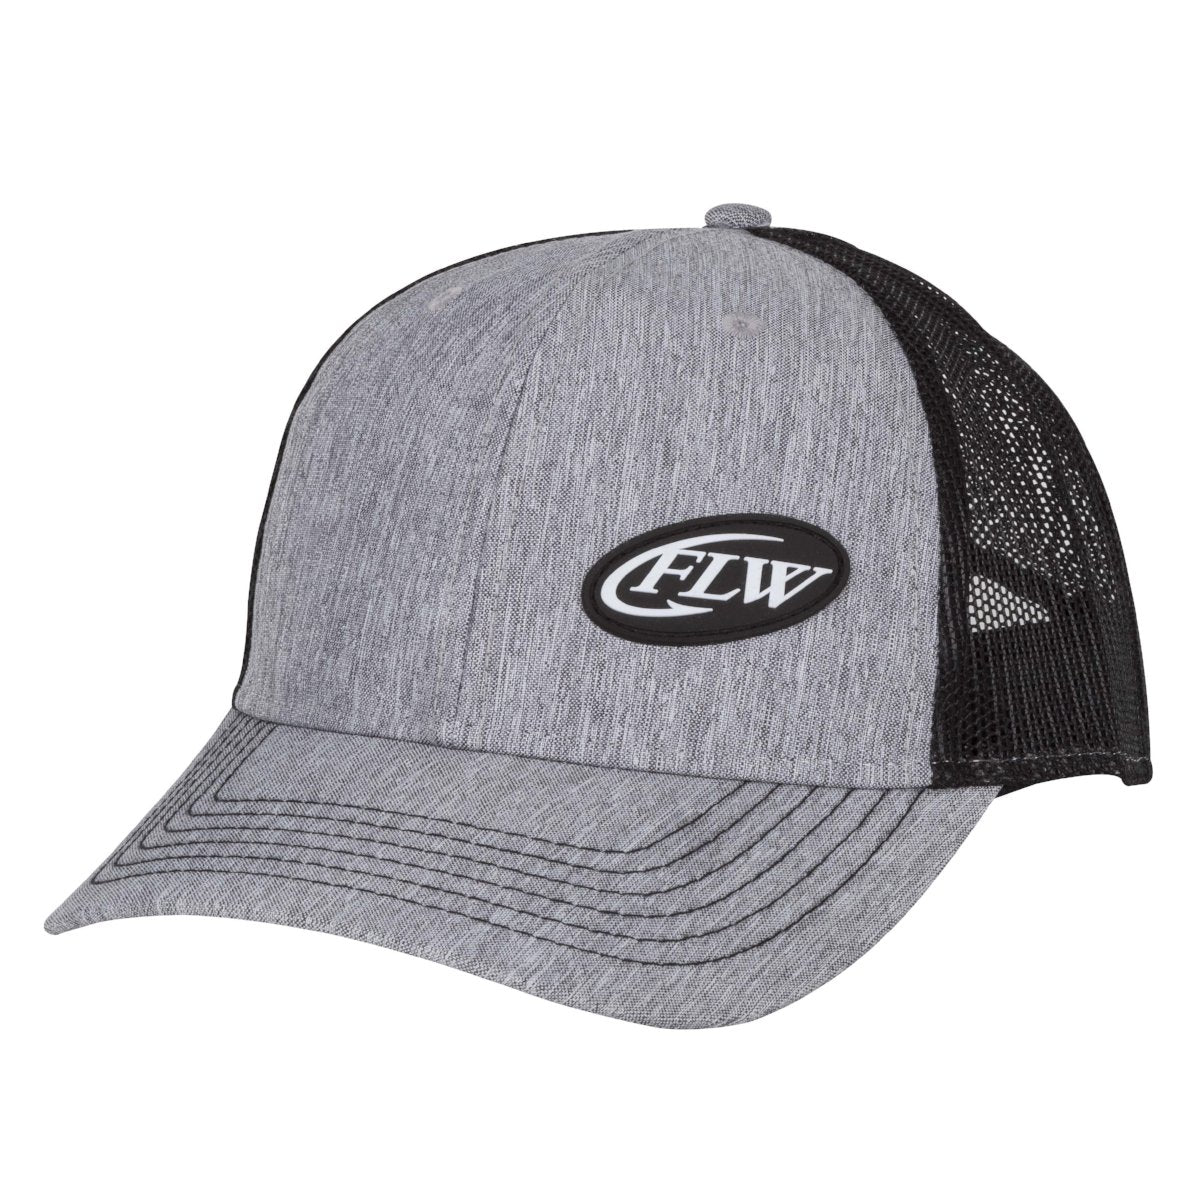 Fishing League Worldwide Graphite Trucker hat